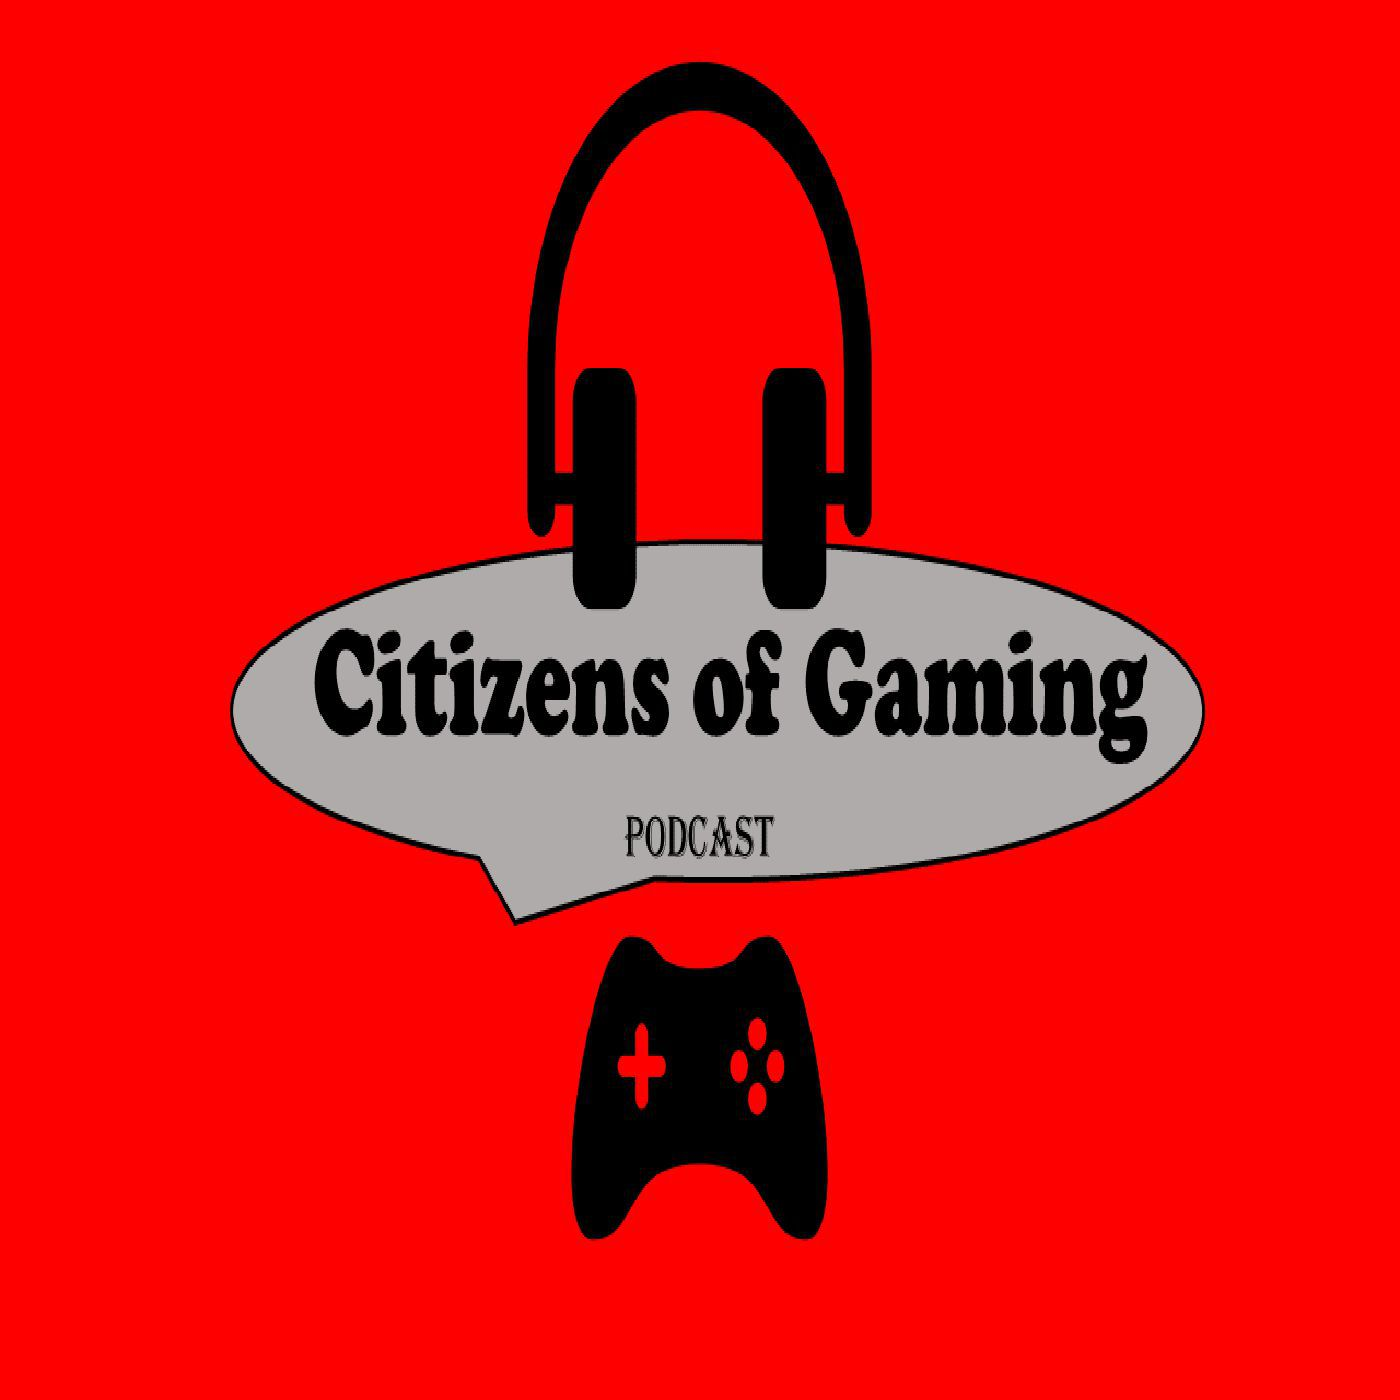 Citizens of Gaming Podcast